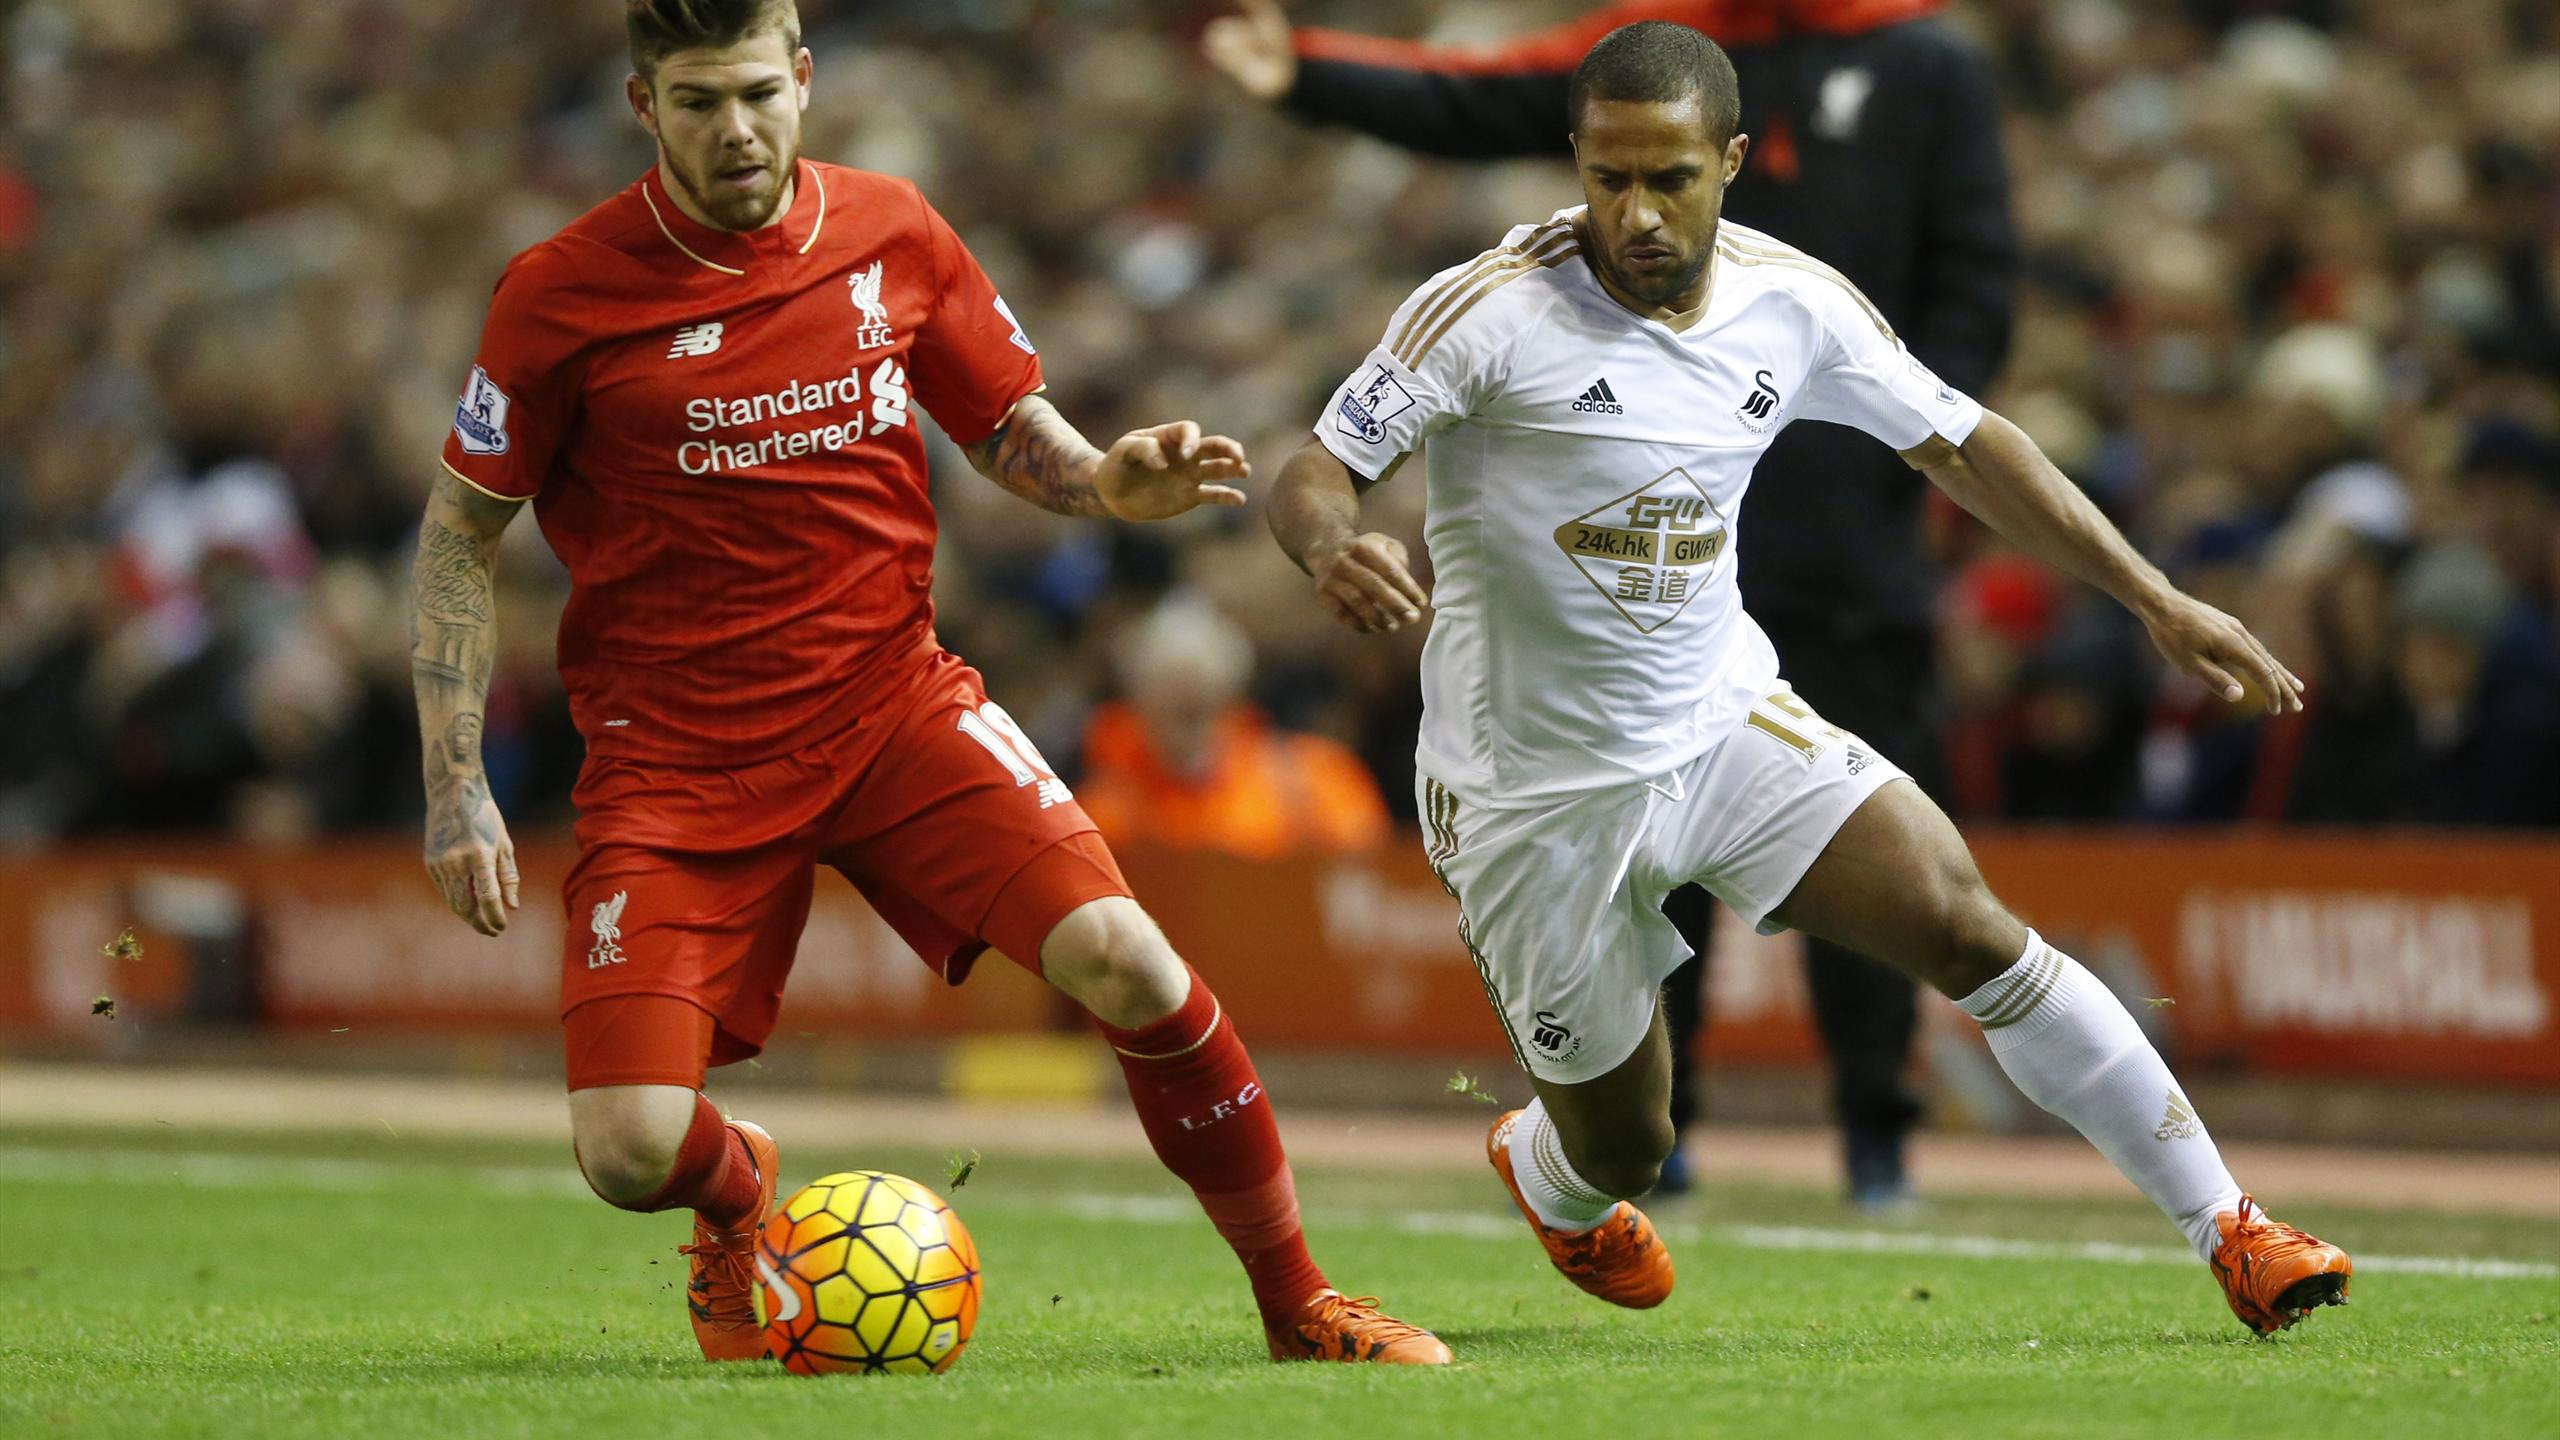 Alberto Moreno and Wayne Routledge tussle